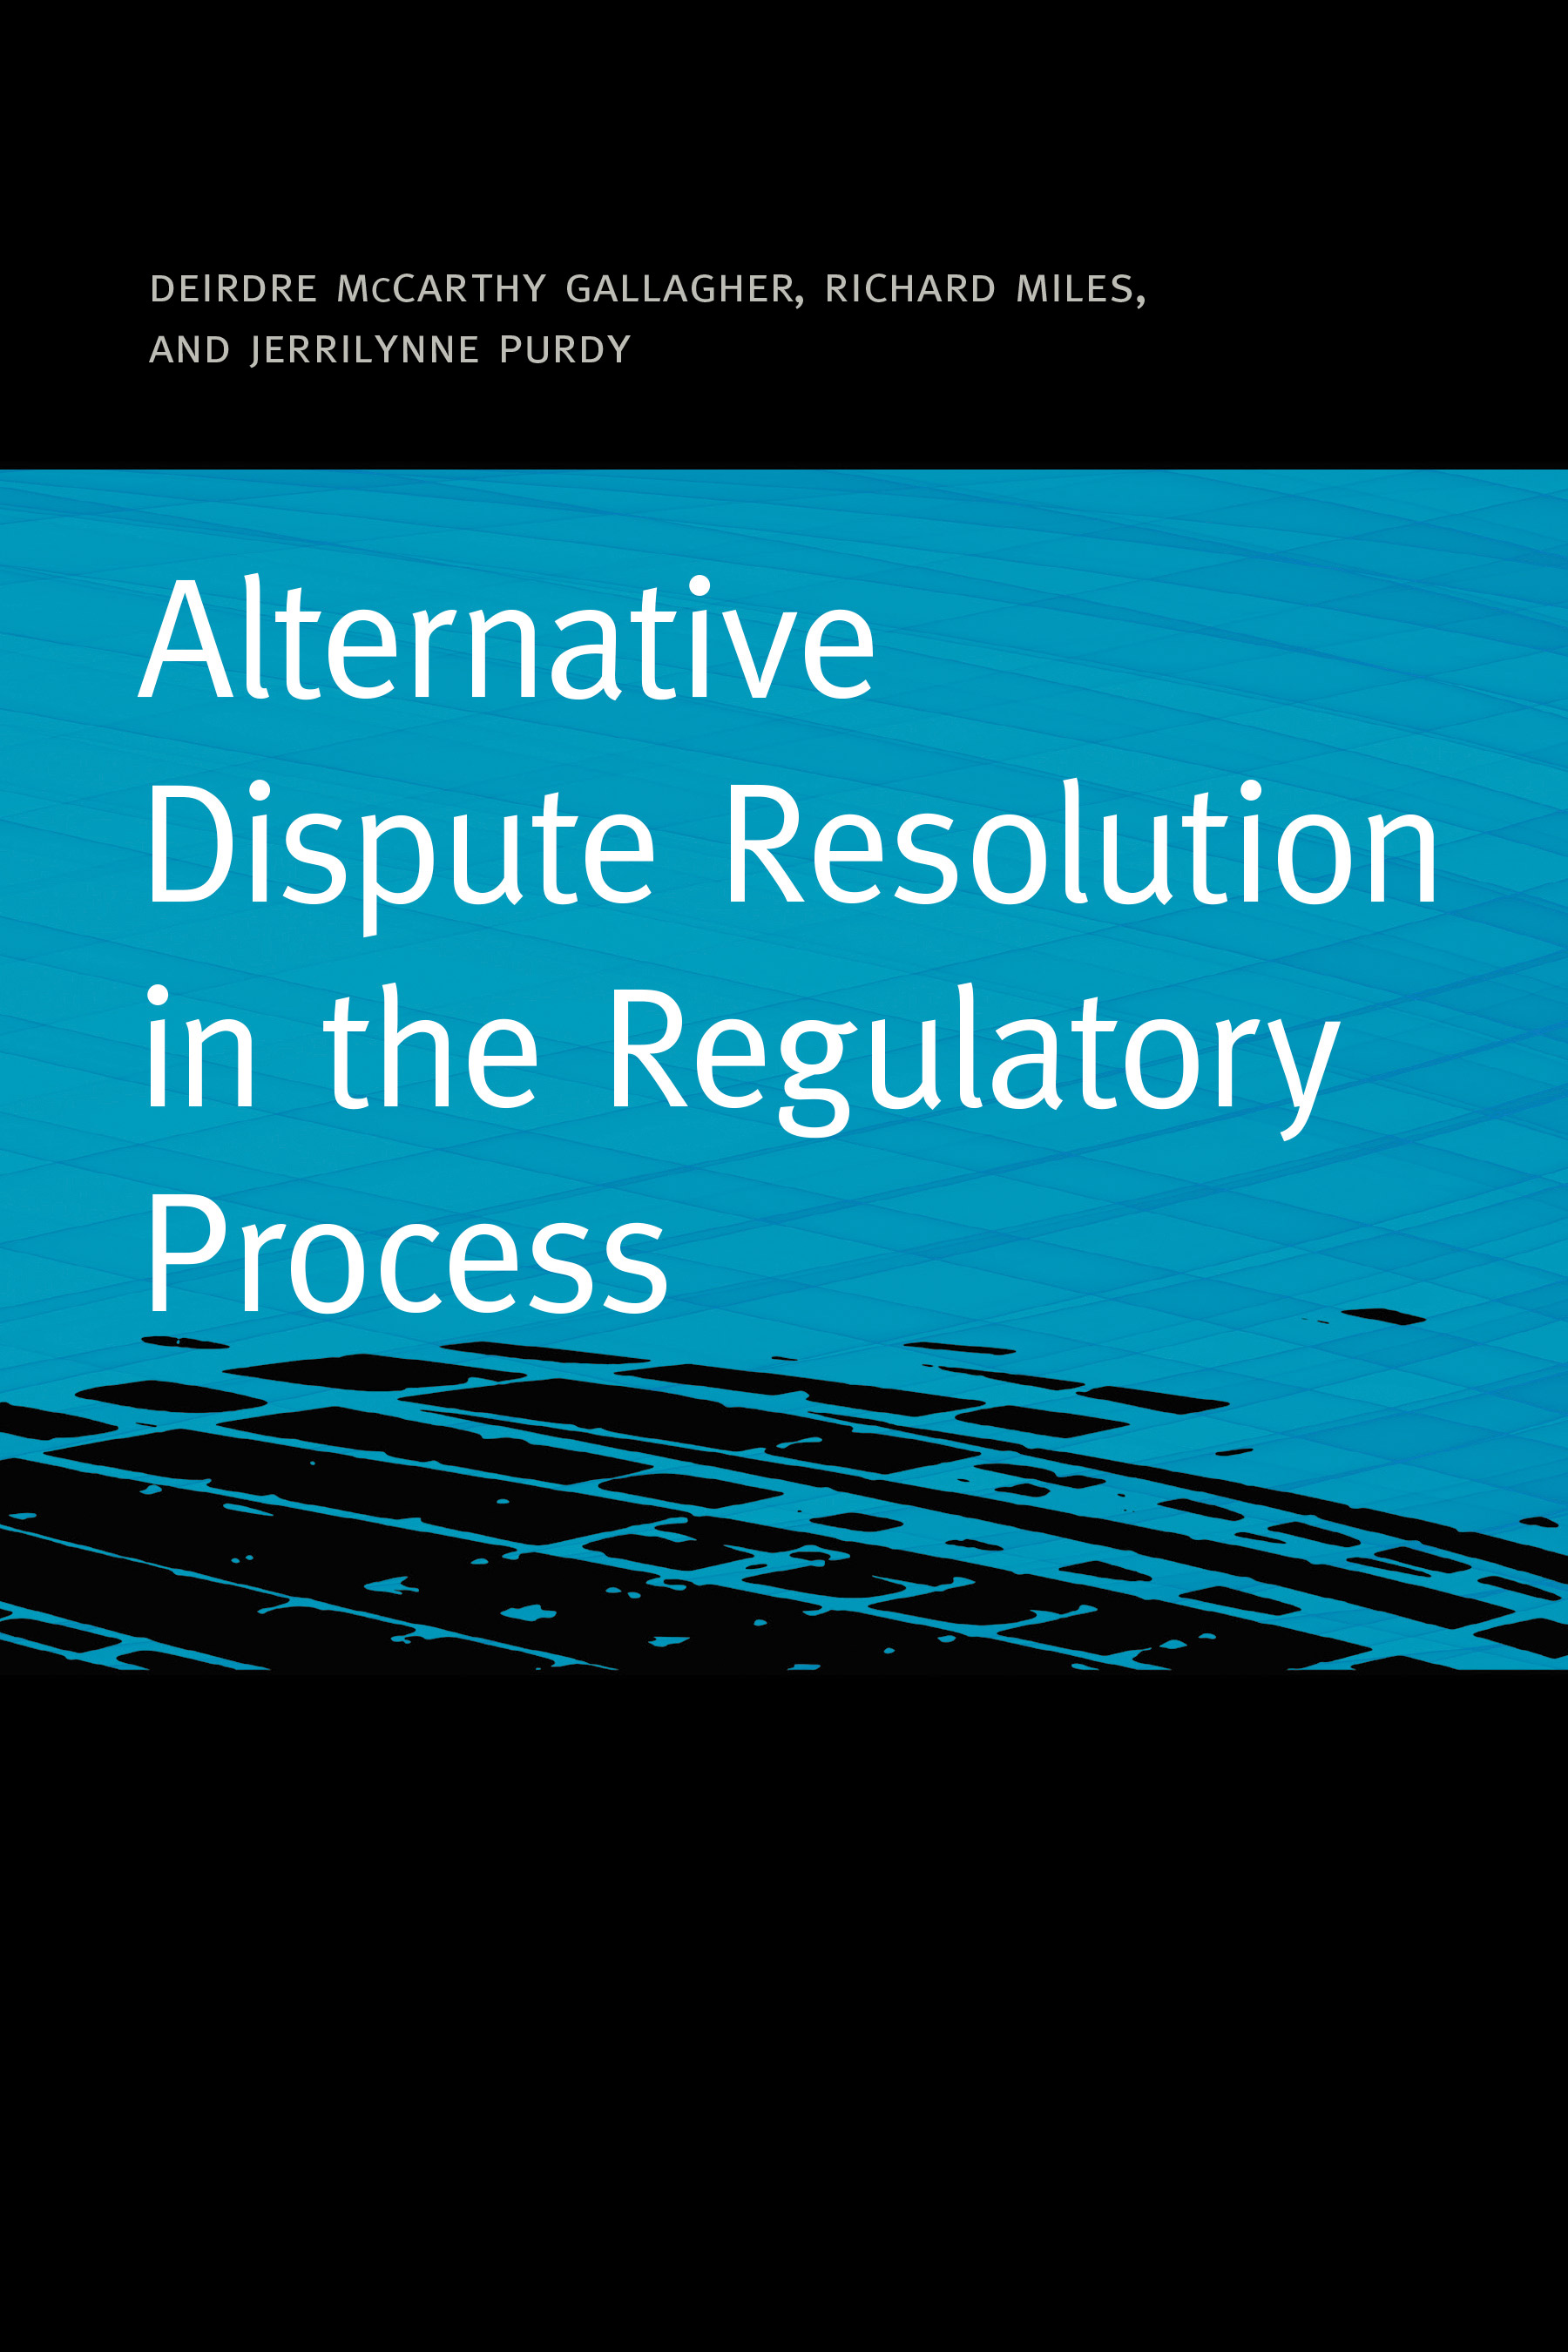 Alternative Dispute Resolution in the Regulatory Process cover